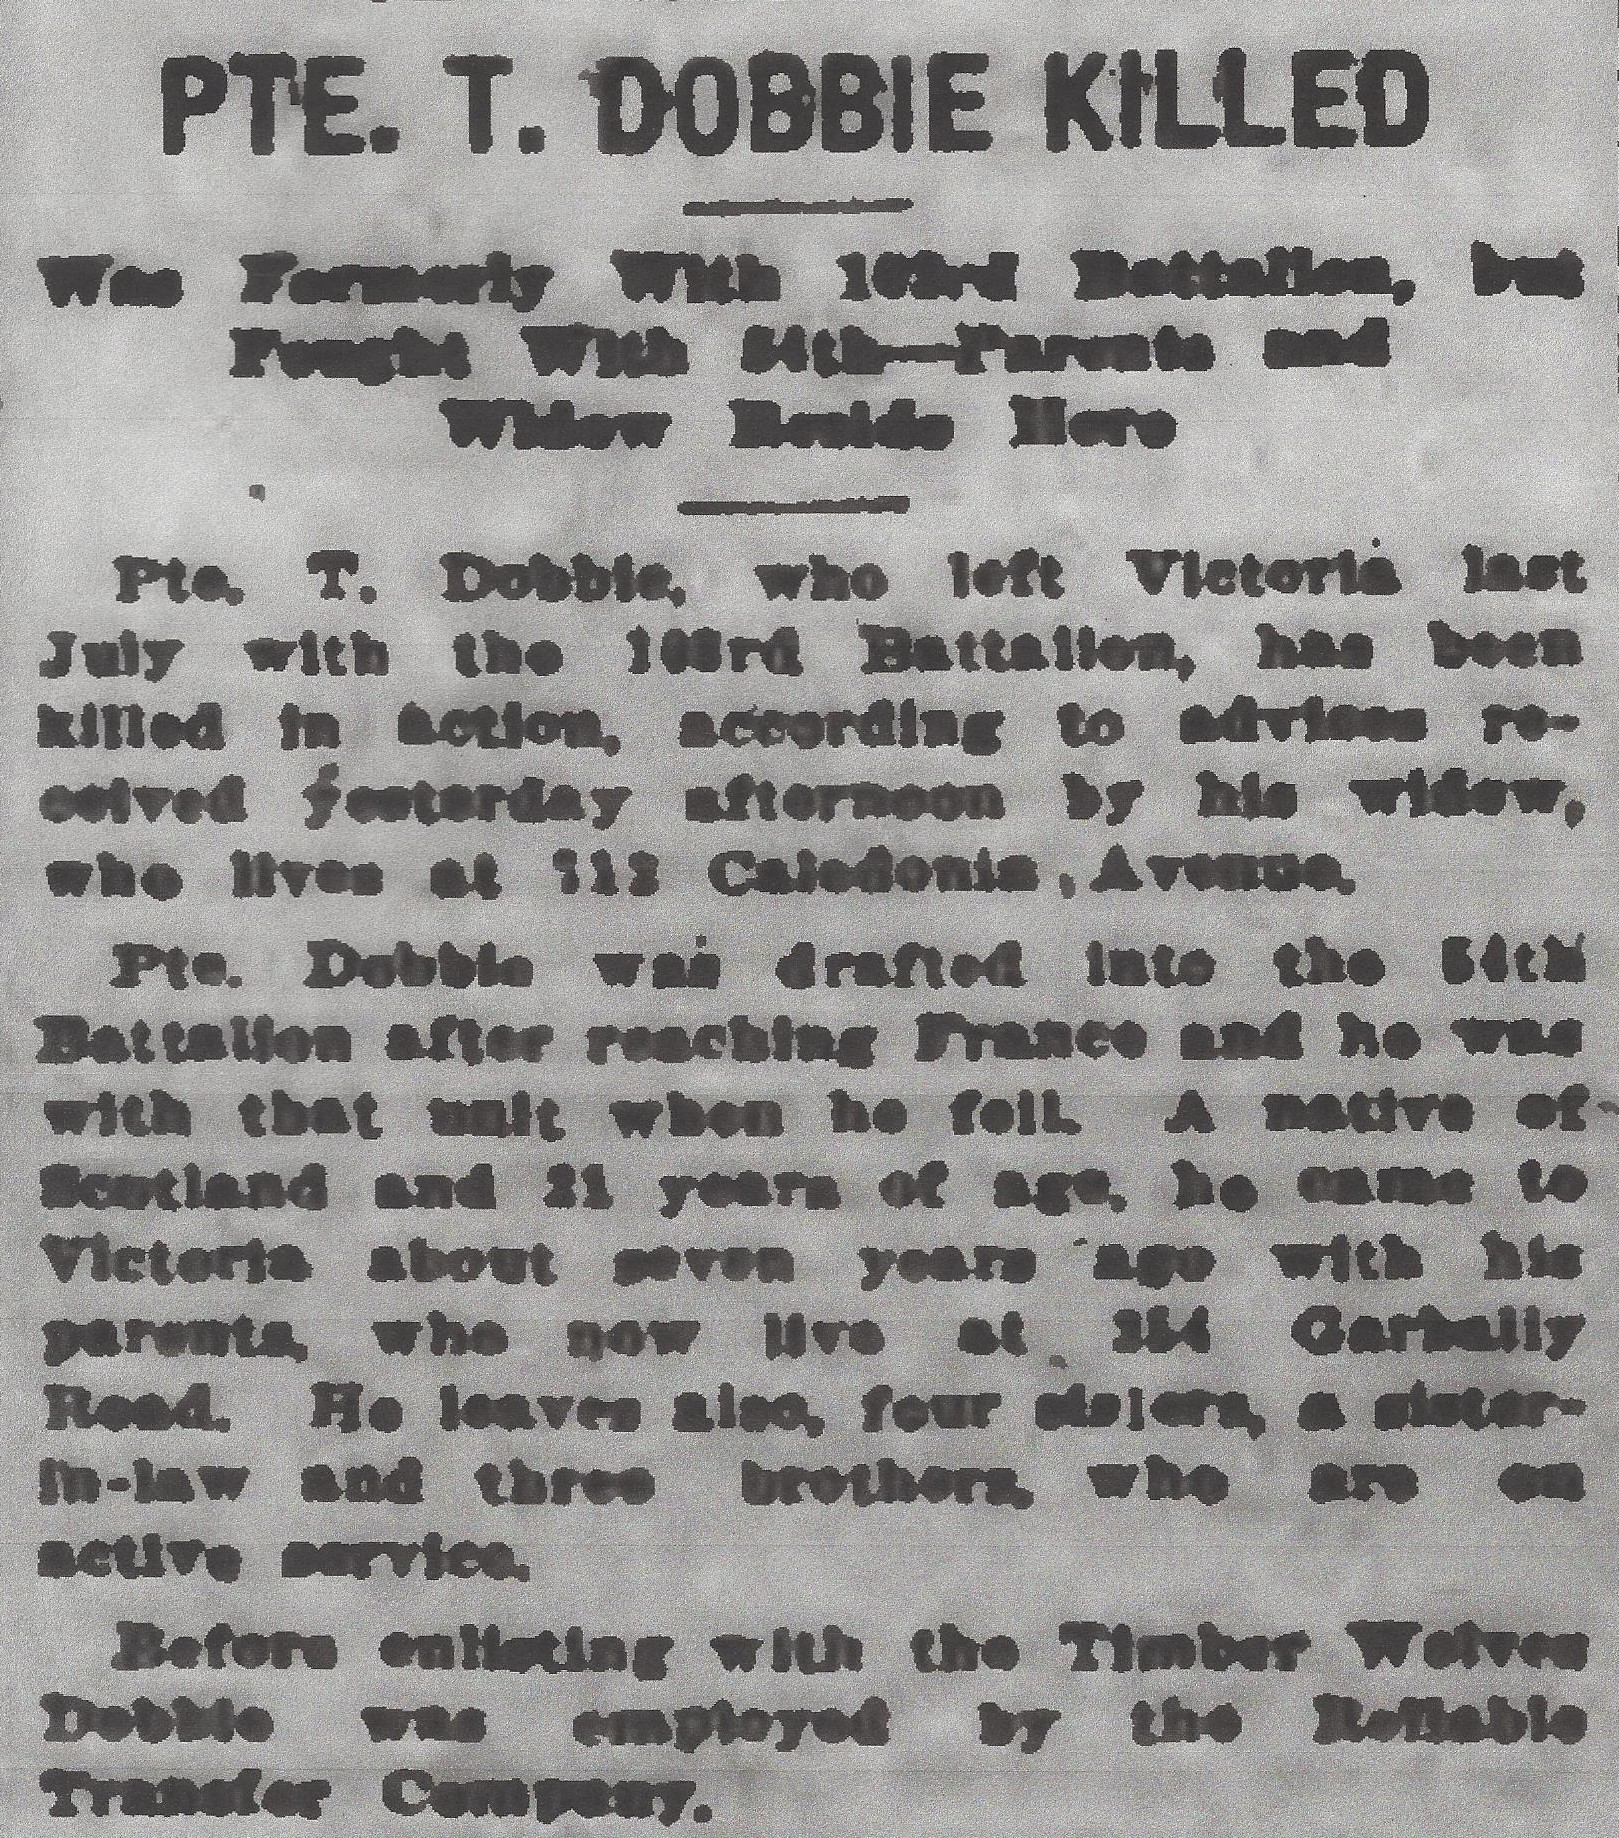 Newspaper clipping– From the Daily Colonist of April 29, 1917. Image taken from web address of http://archive.org/stream/dailycolonist59y121uvic#page/n0/mode/1up